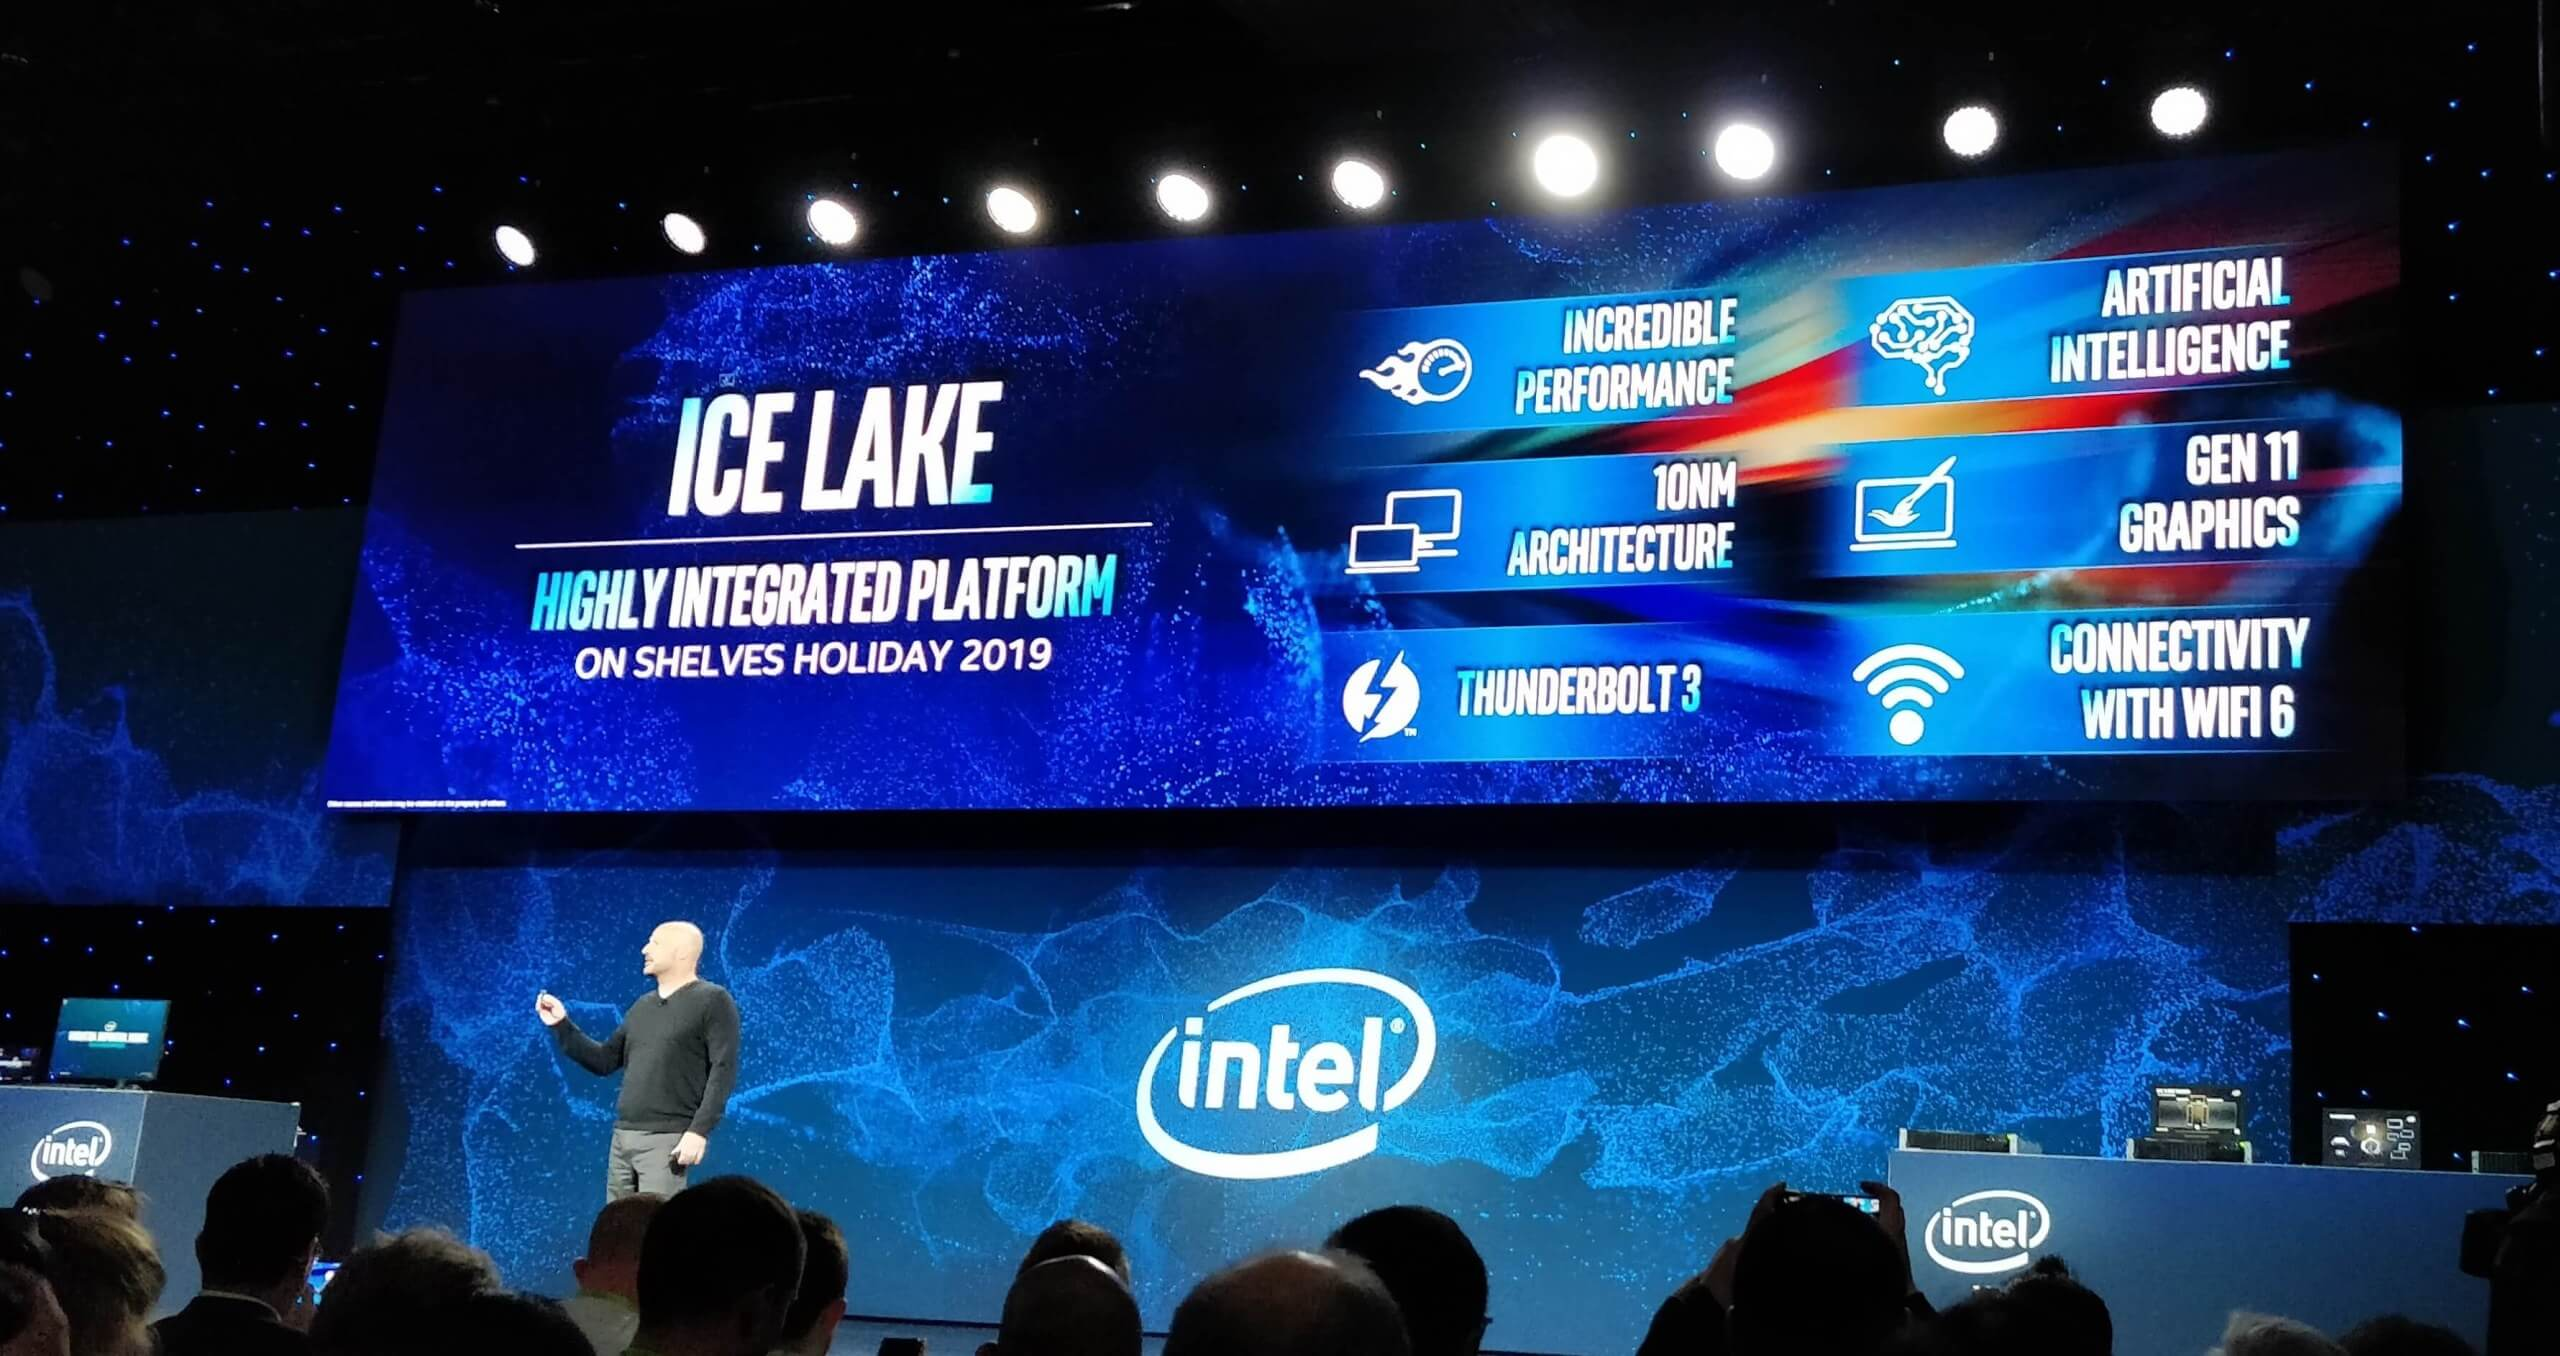 Intel details upcoming 'Ice Lake' Gen 11 integrated graphics